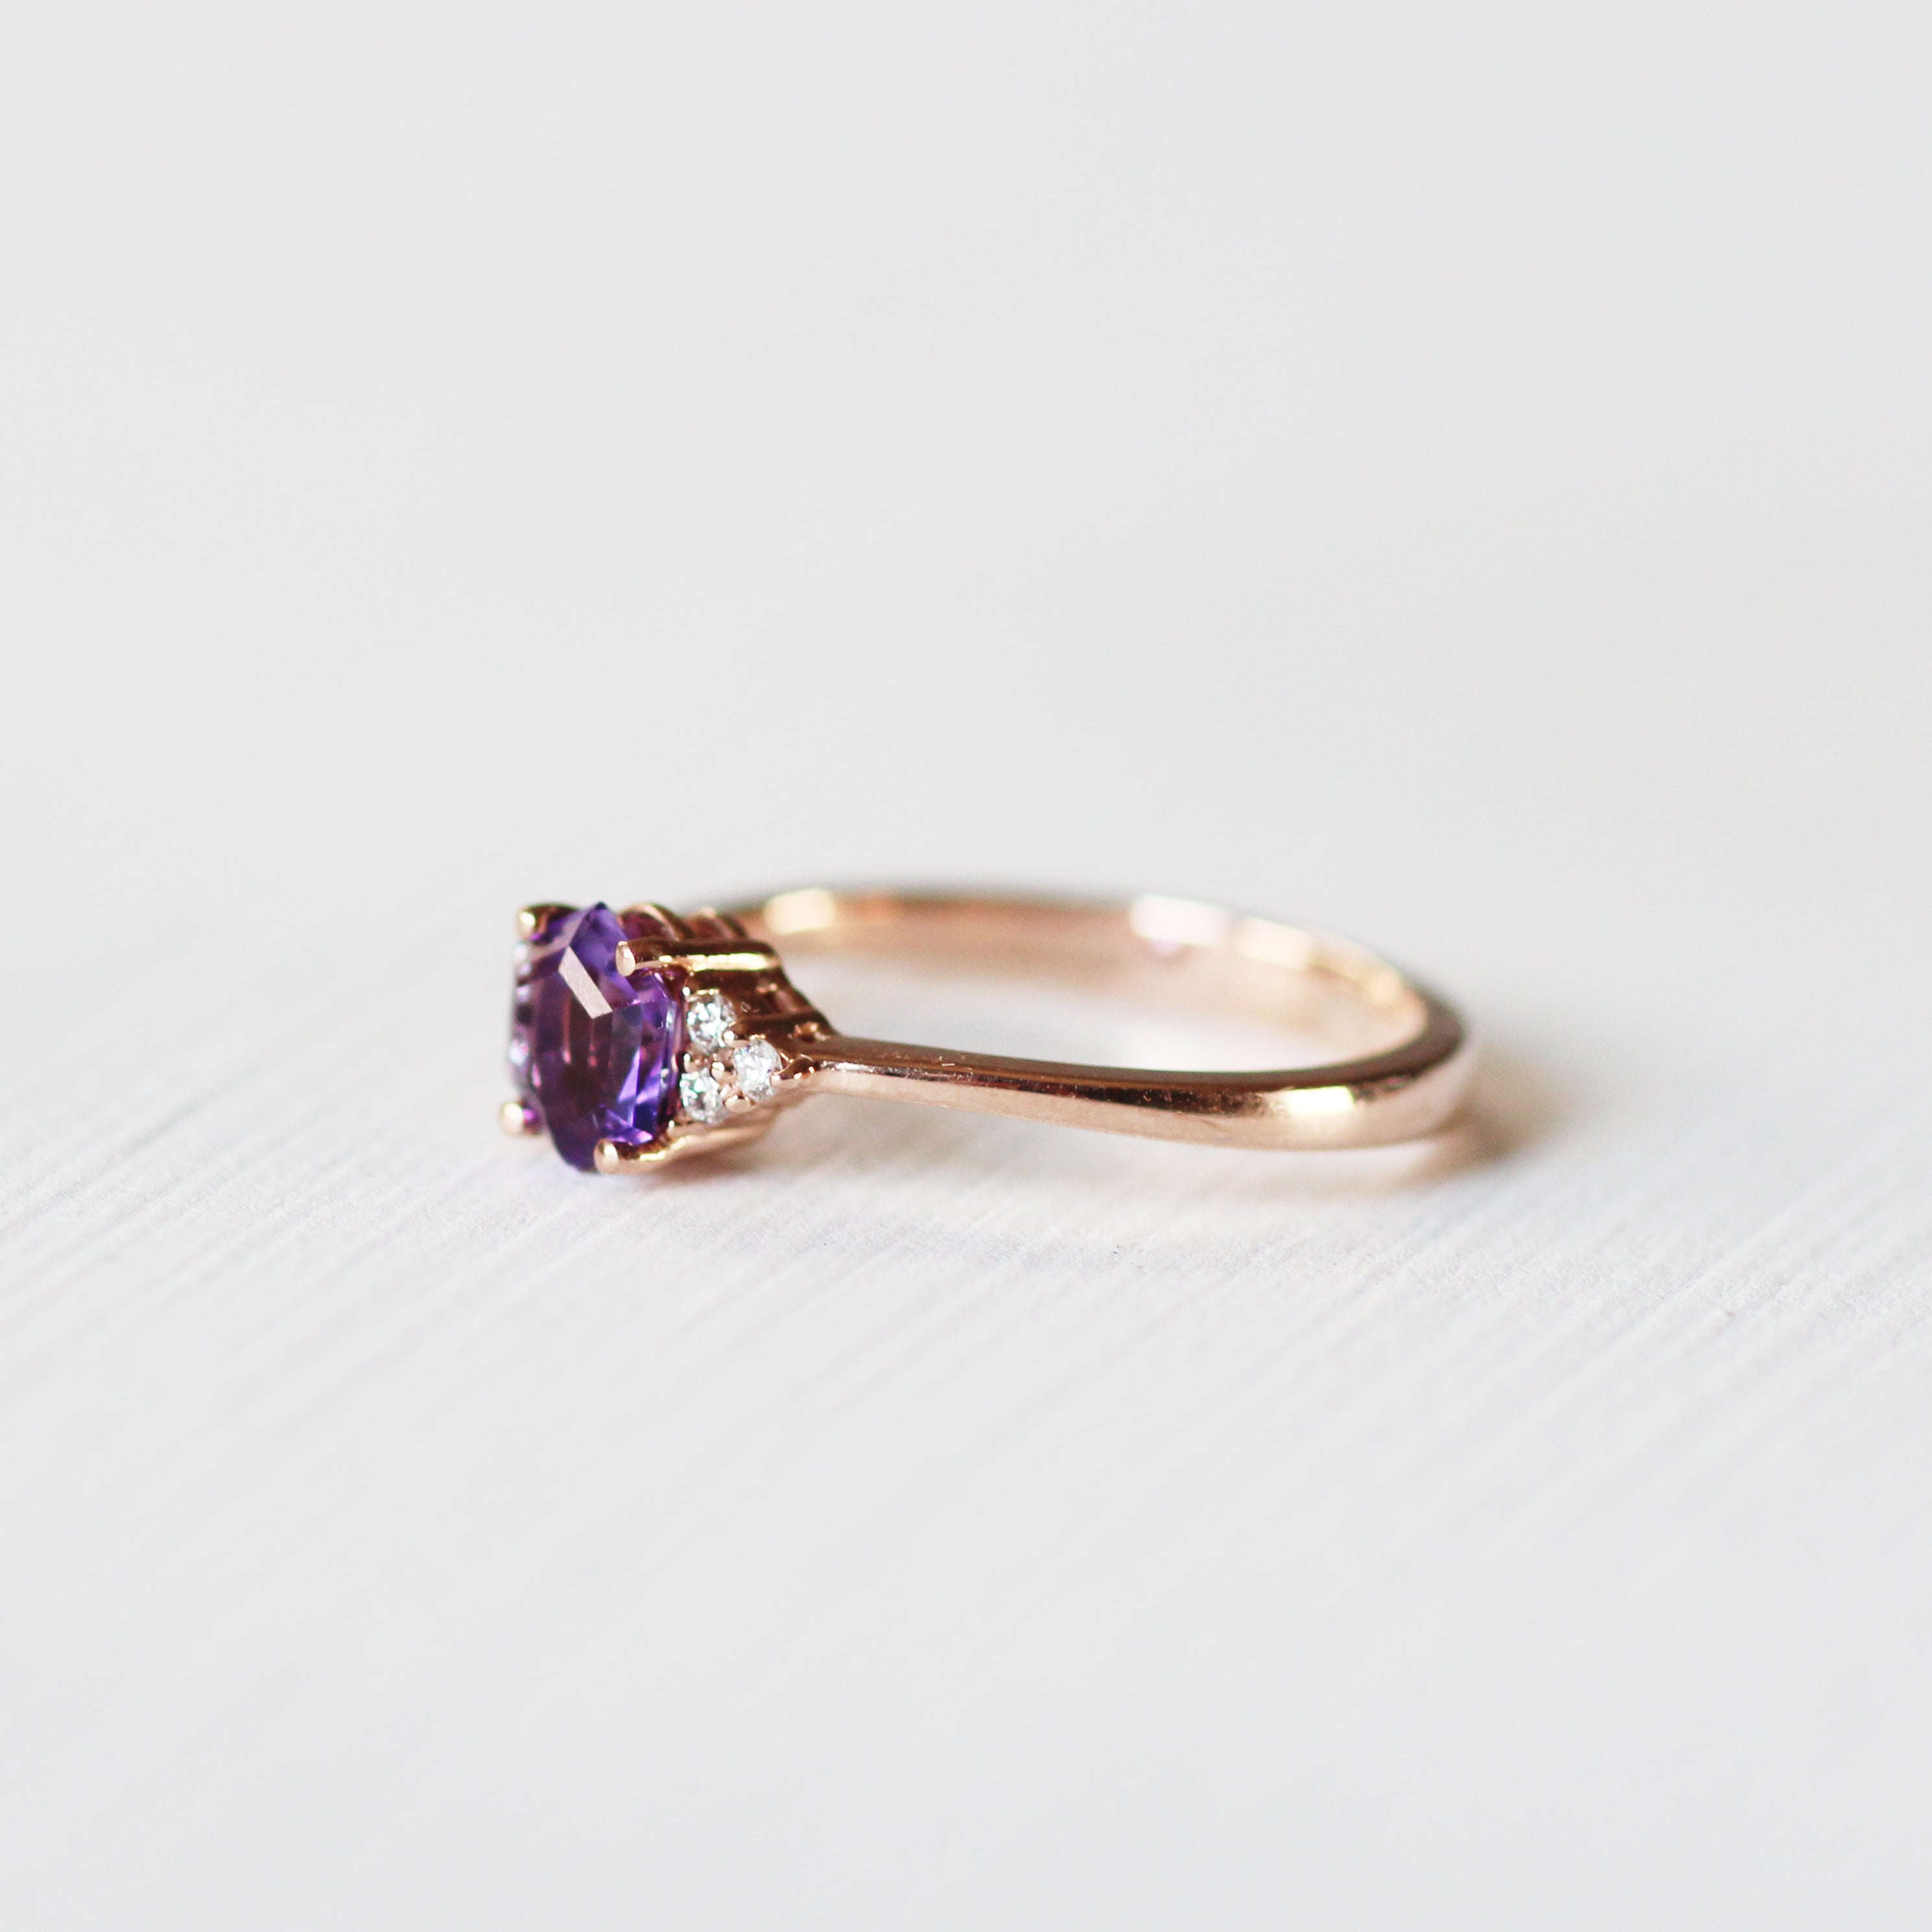 Imogene with natural Amethyst with natural diamonds in 14k rose gold